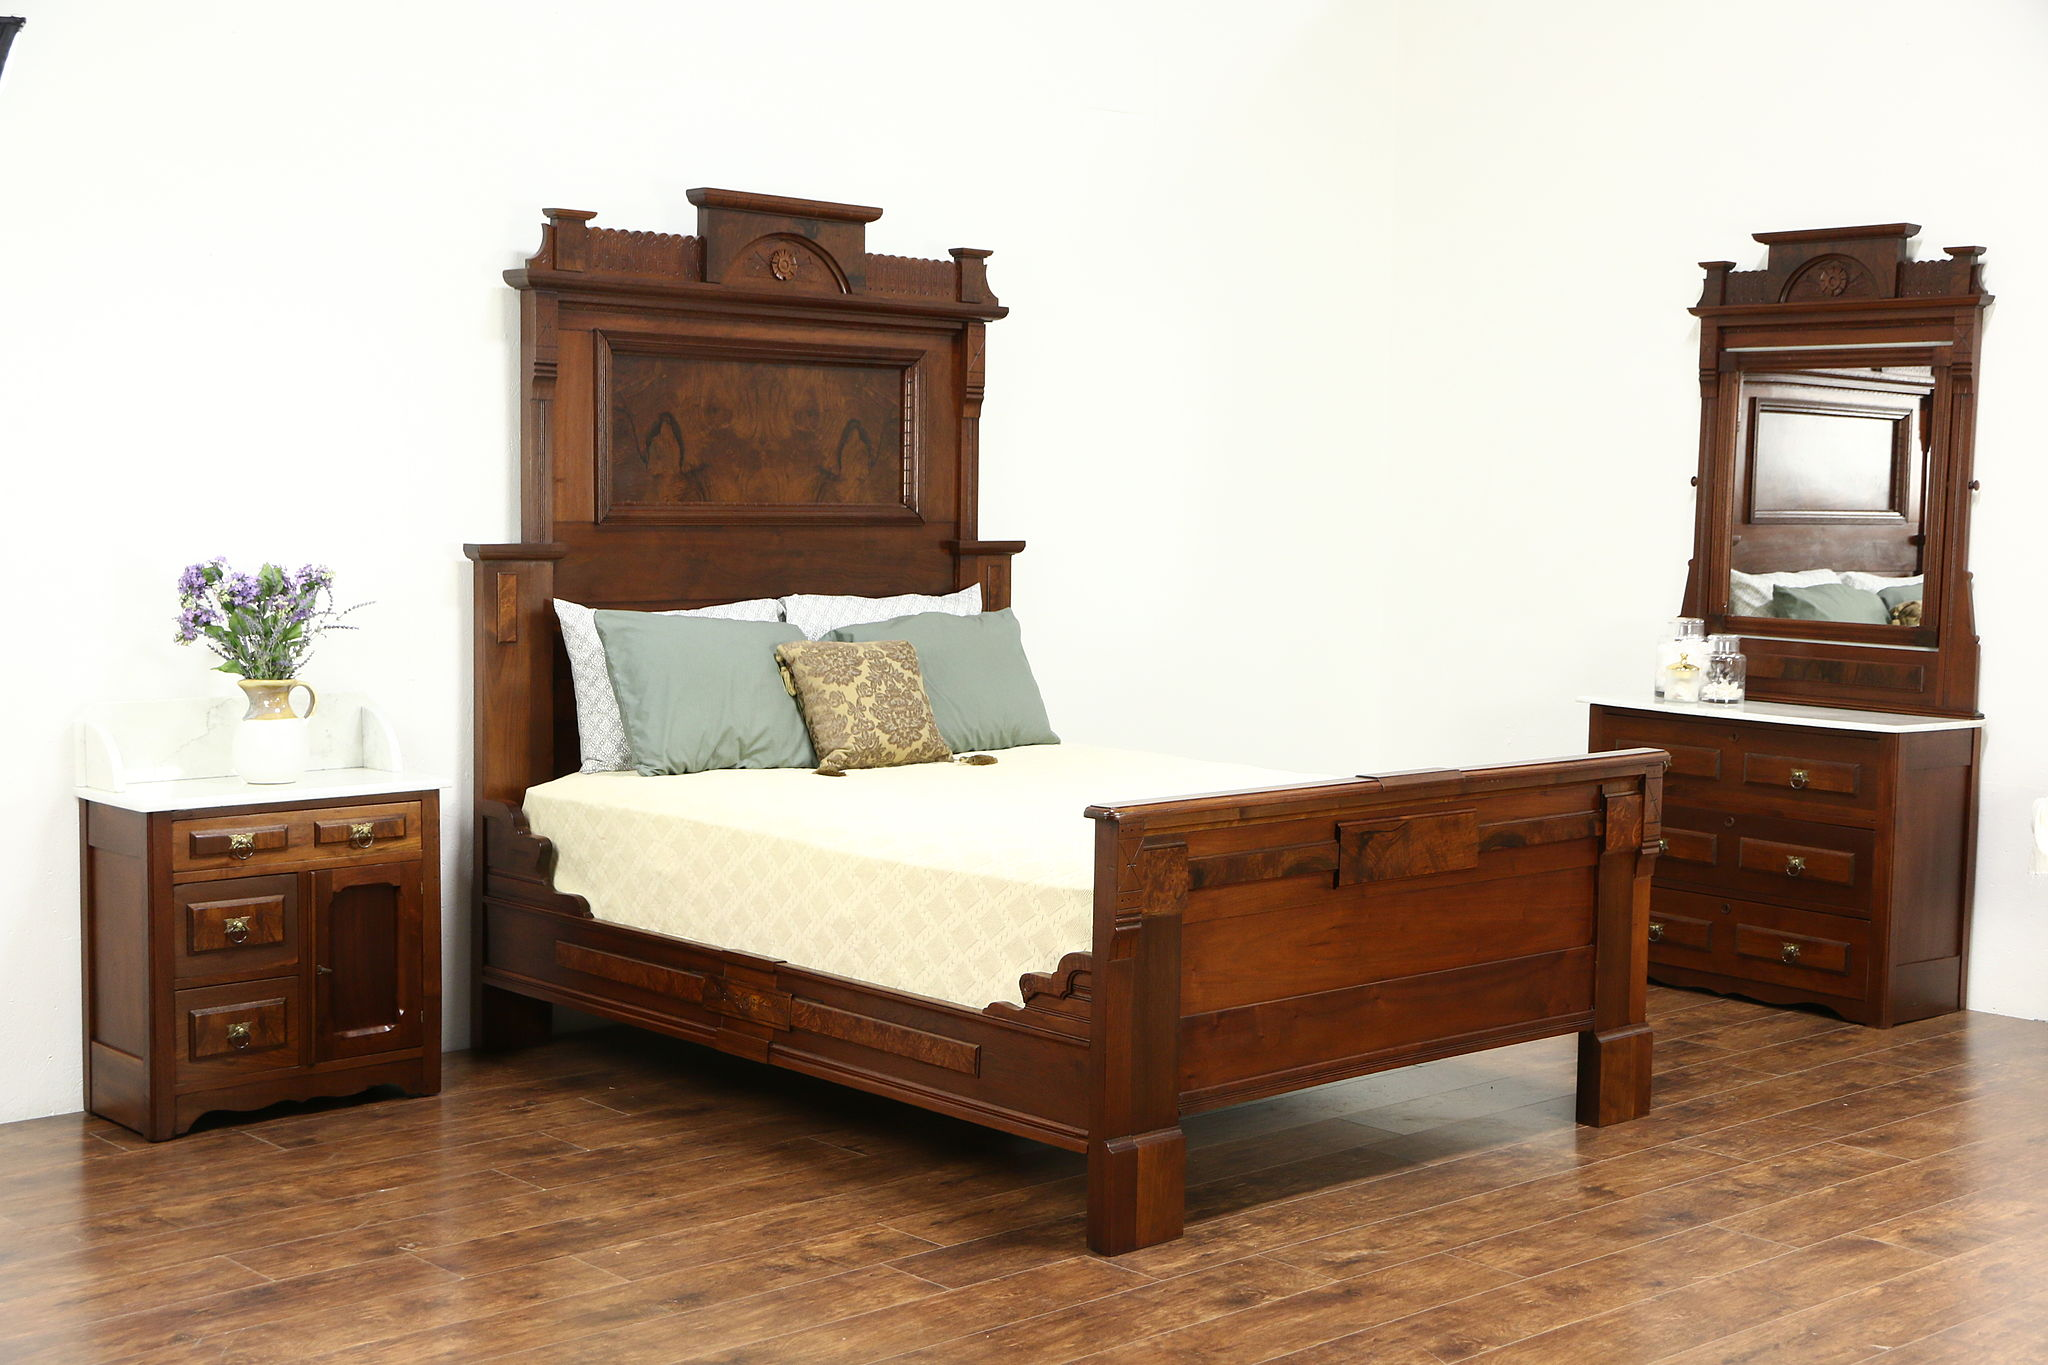 Bedroom Sets With Marble Tops victorian 1880 antique walnut queen size bedroom set, marble tops